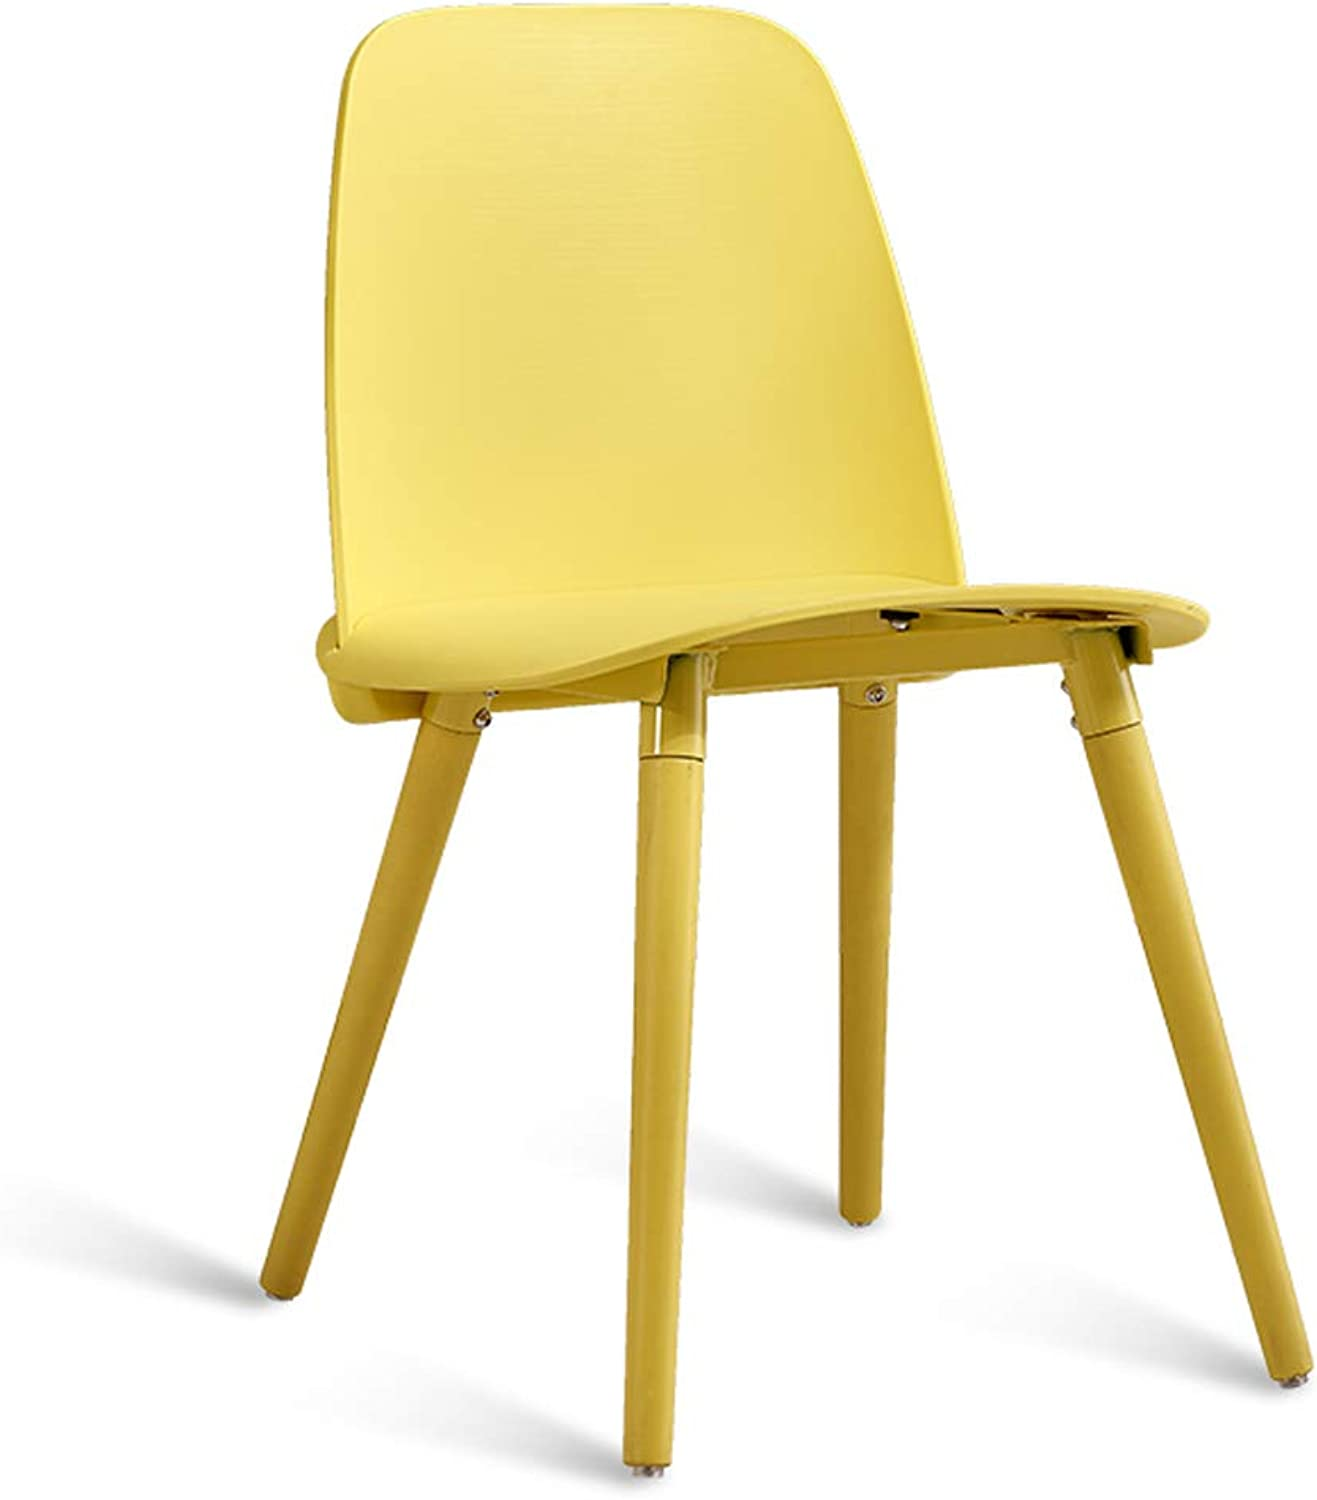 LRW Modern Fashion Chair Restaurant, Creative Dining Chair, Nordic Desk Chair, Leisure Backrest Stool, Yellow Wooden Leg